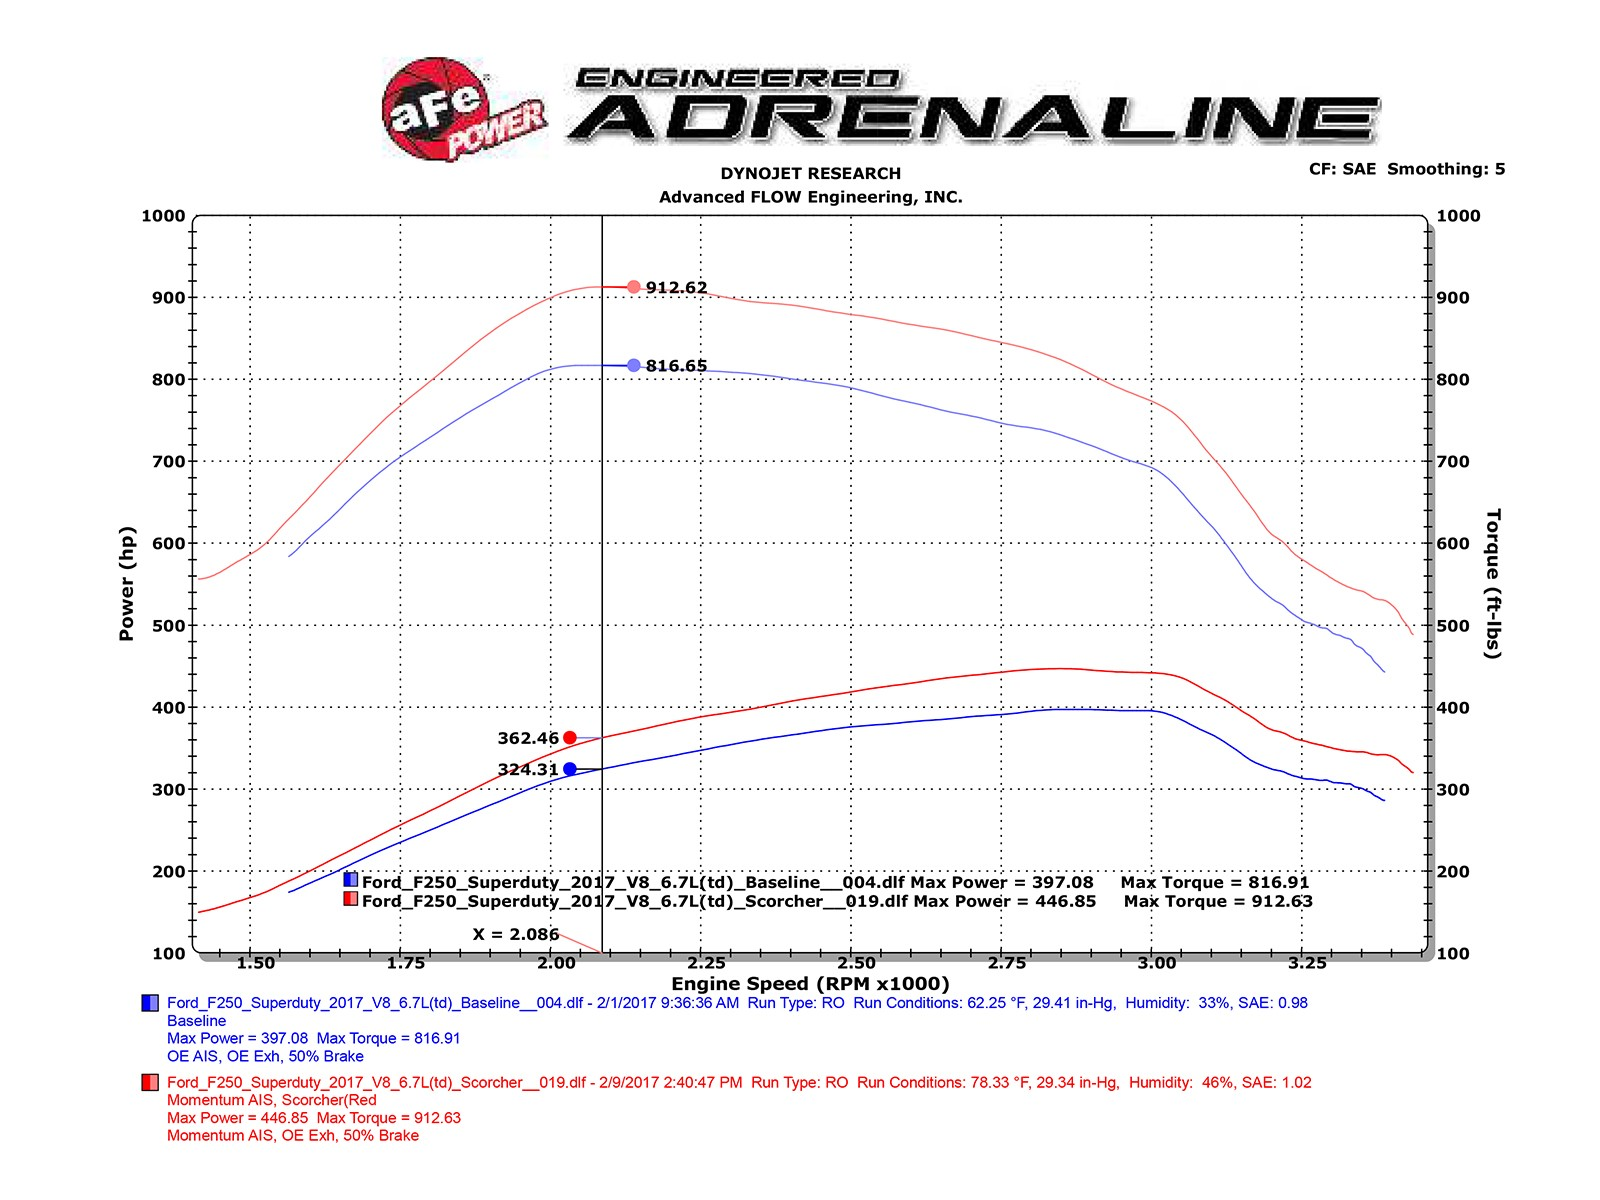 Scorcher Blue Bluetooth Power Module Afe Complete Electrical Wiring Diagram Of Porsche Type 912 Adds Up To 50 Hp Horsepower 96 Lbs X Ft Torque Max Gains